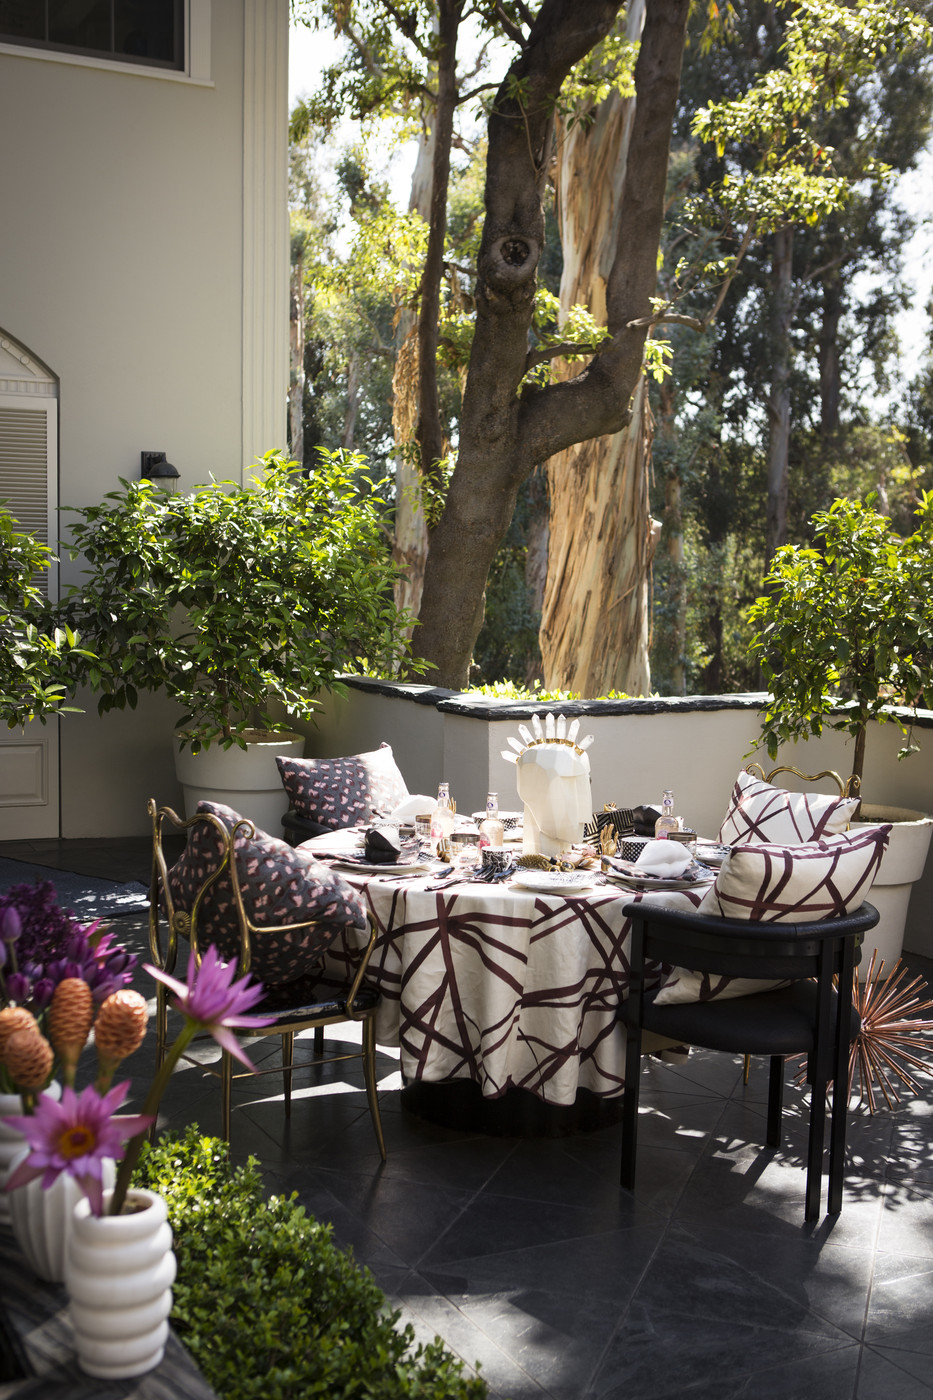 Fancy Outdoor Planters Photos Design Ideas Remodel And